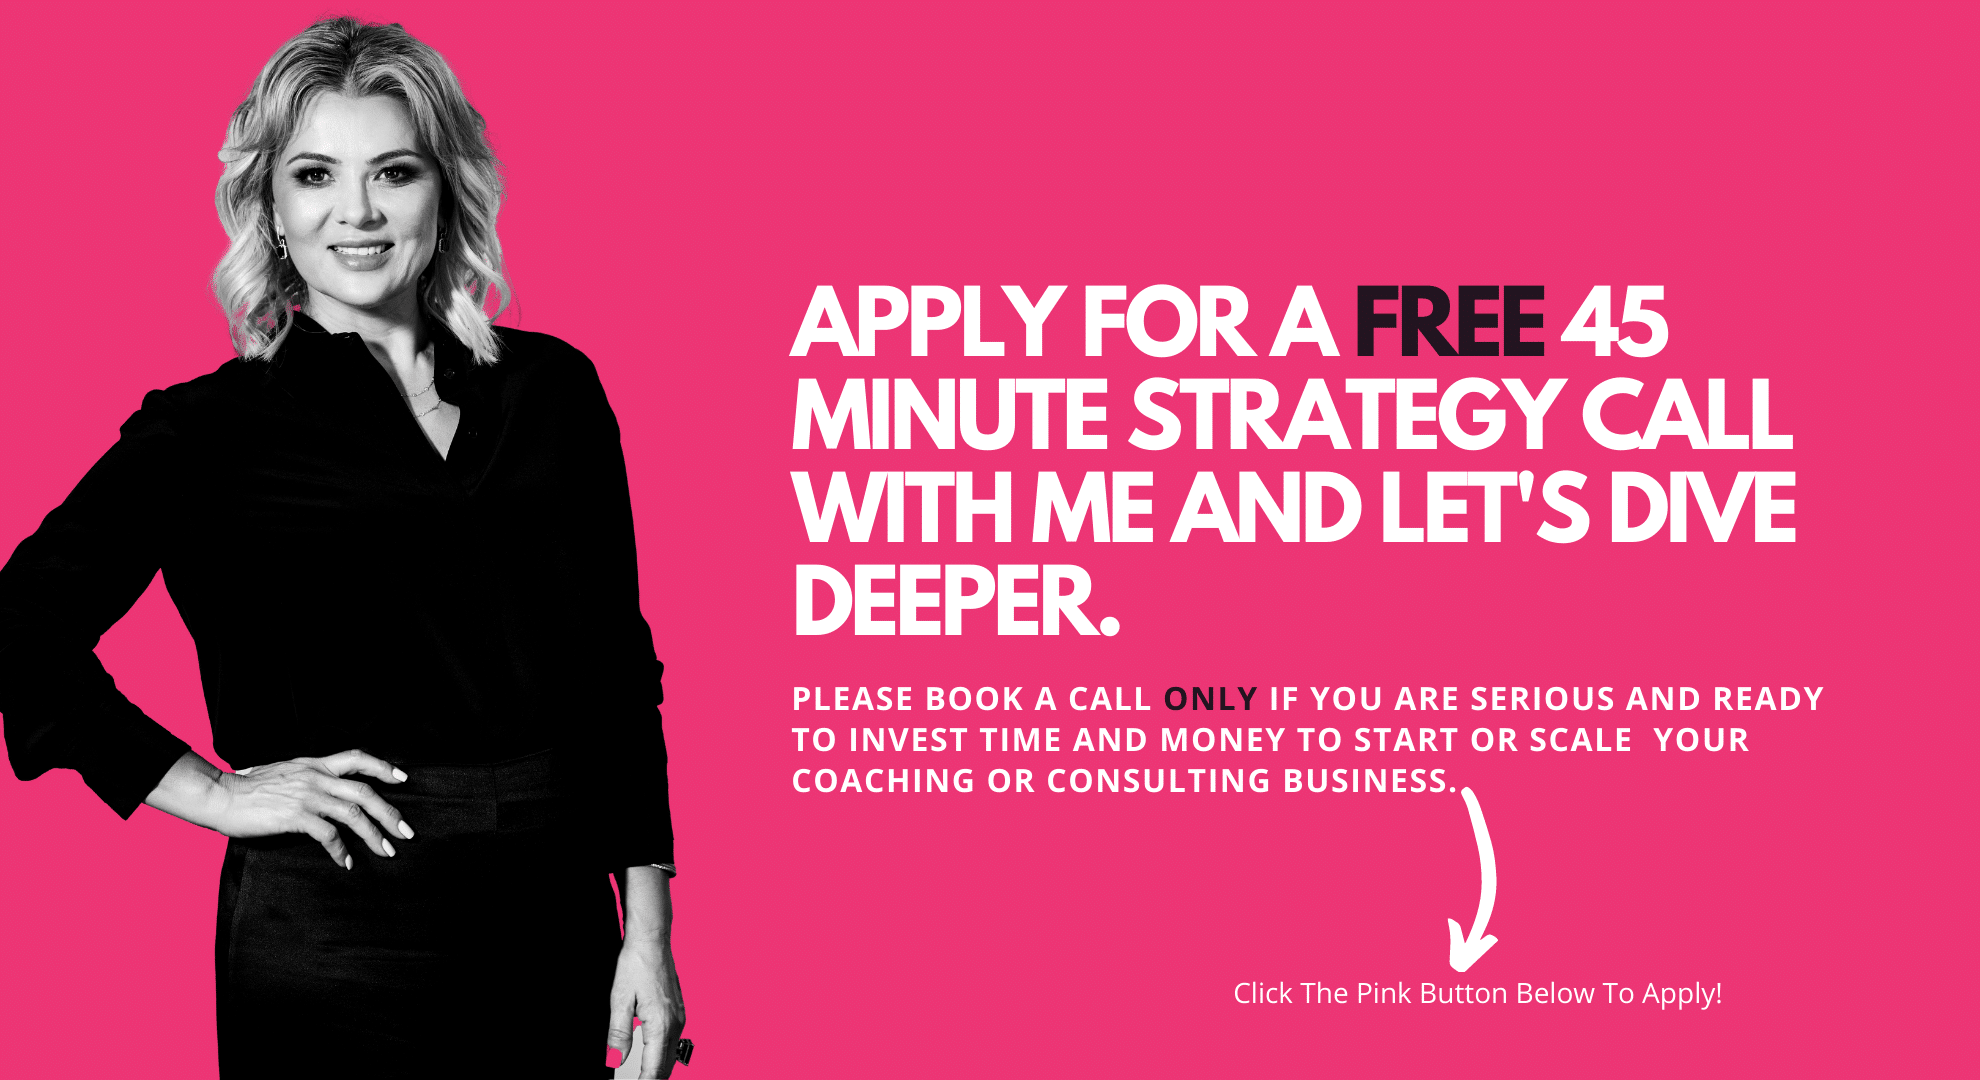 apply for a free 45 minute strategy call with me and let's dive deeper